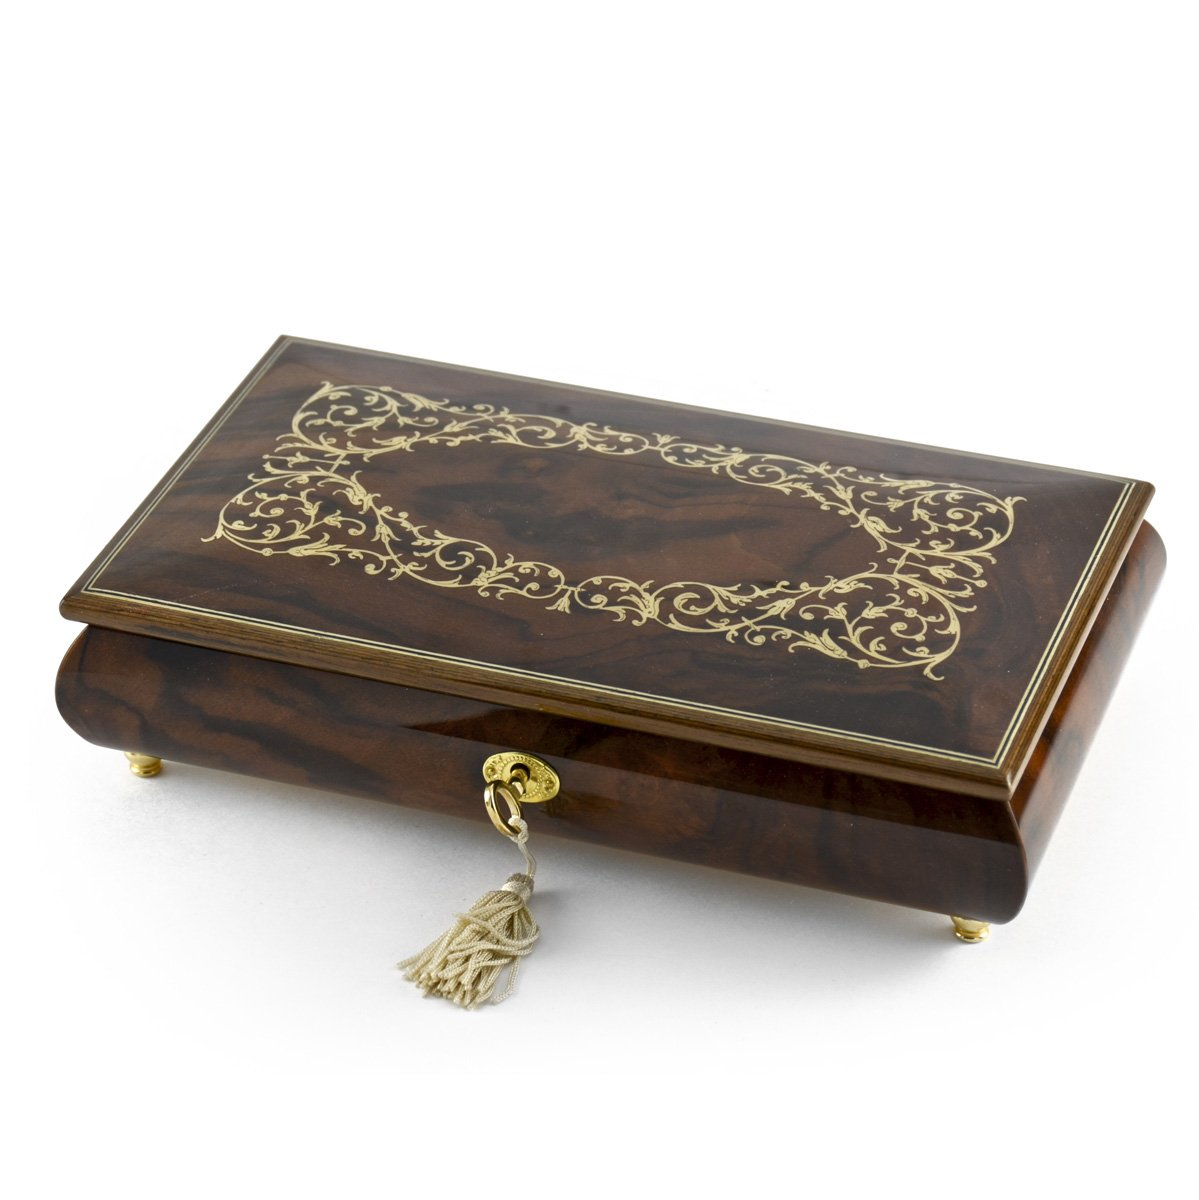 Extraordinary Handcrafted 30 Note Arabesque Inlay Musical Jewelry Box with Lock and Key - Love is Blue